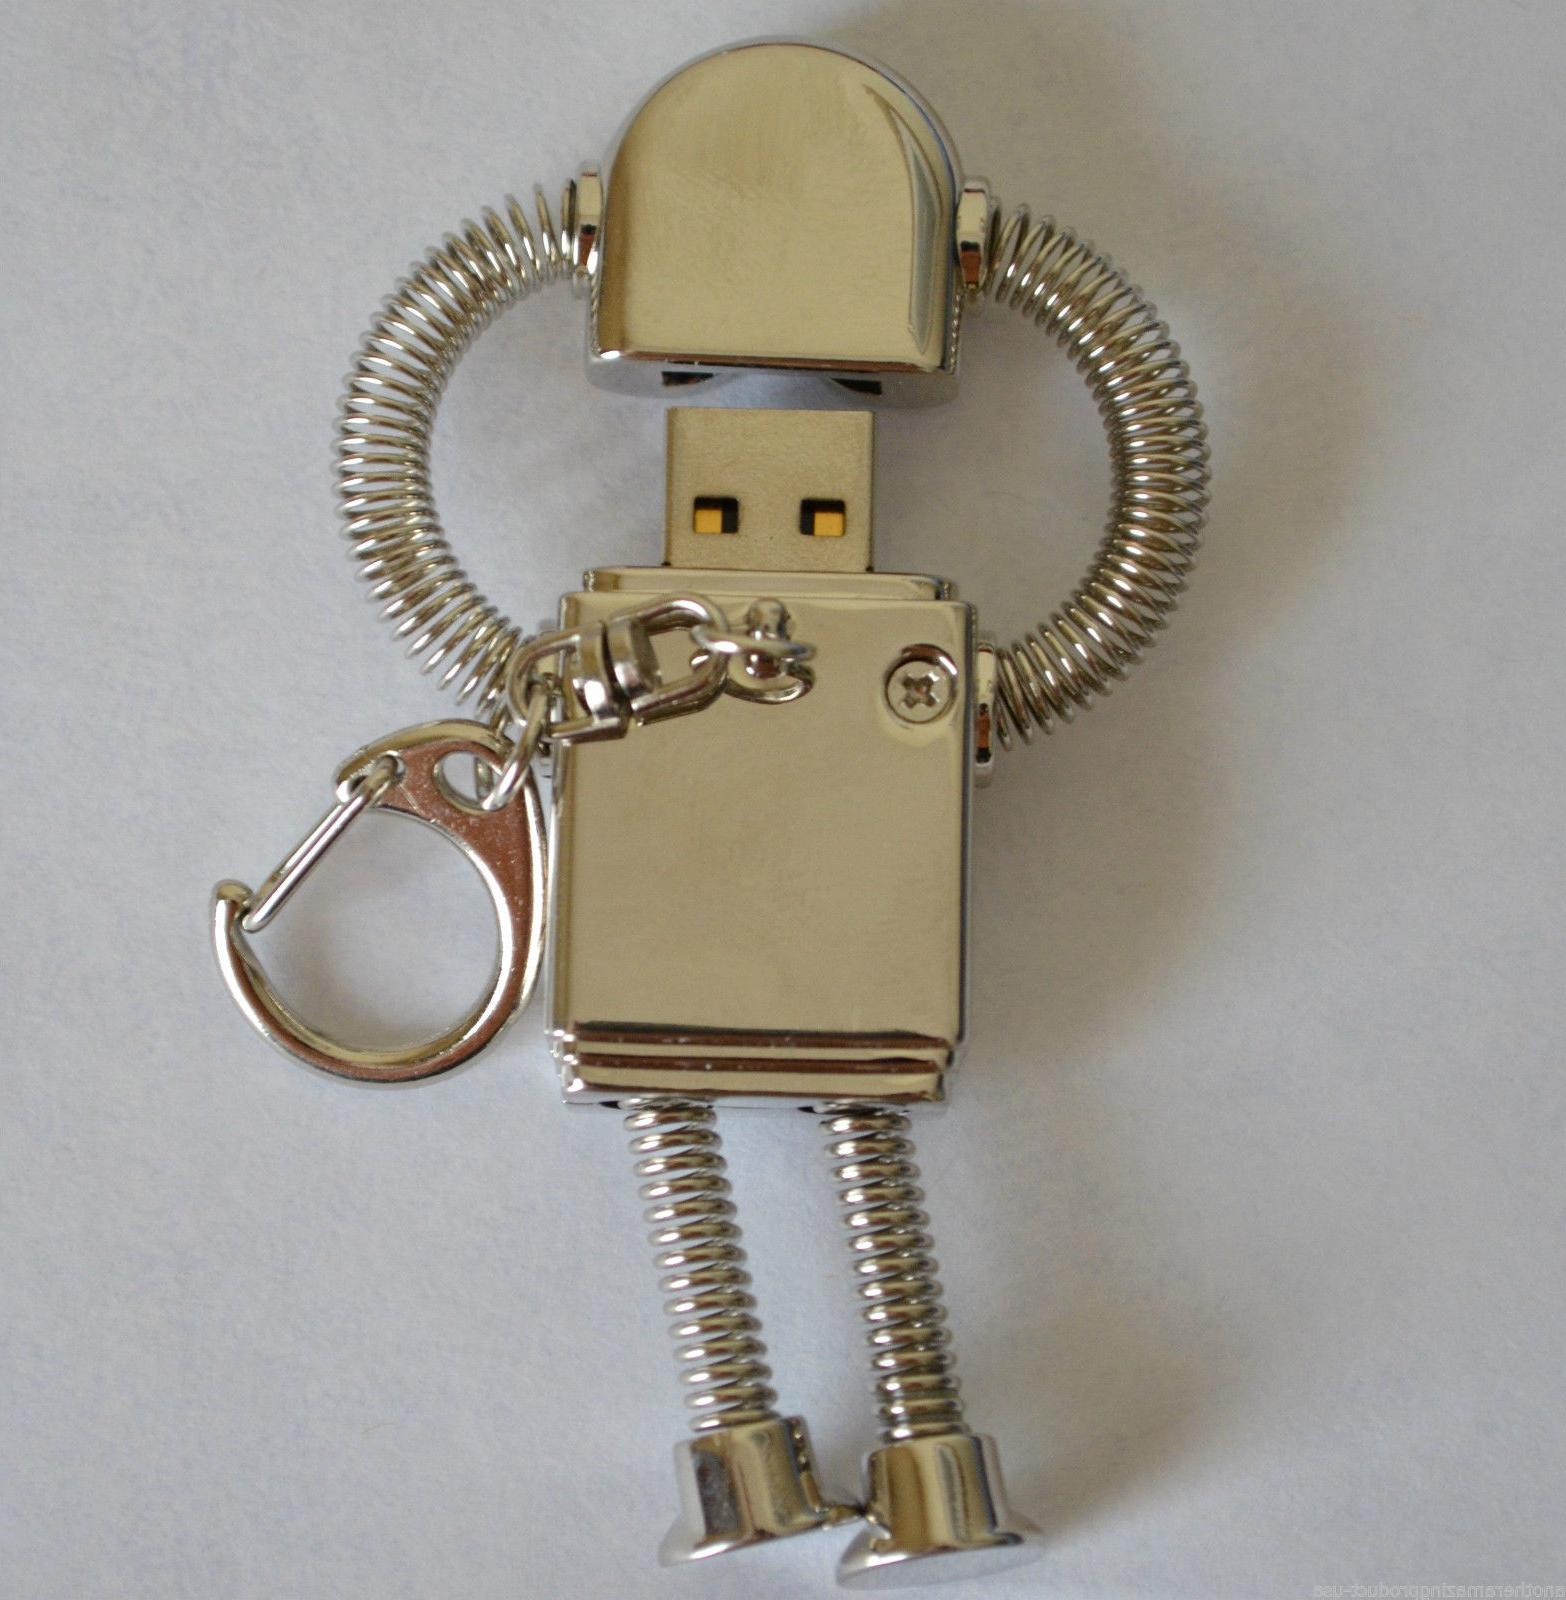 Robot thumb drive metal key good quality ship fast